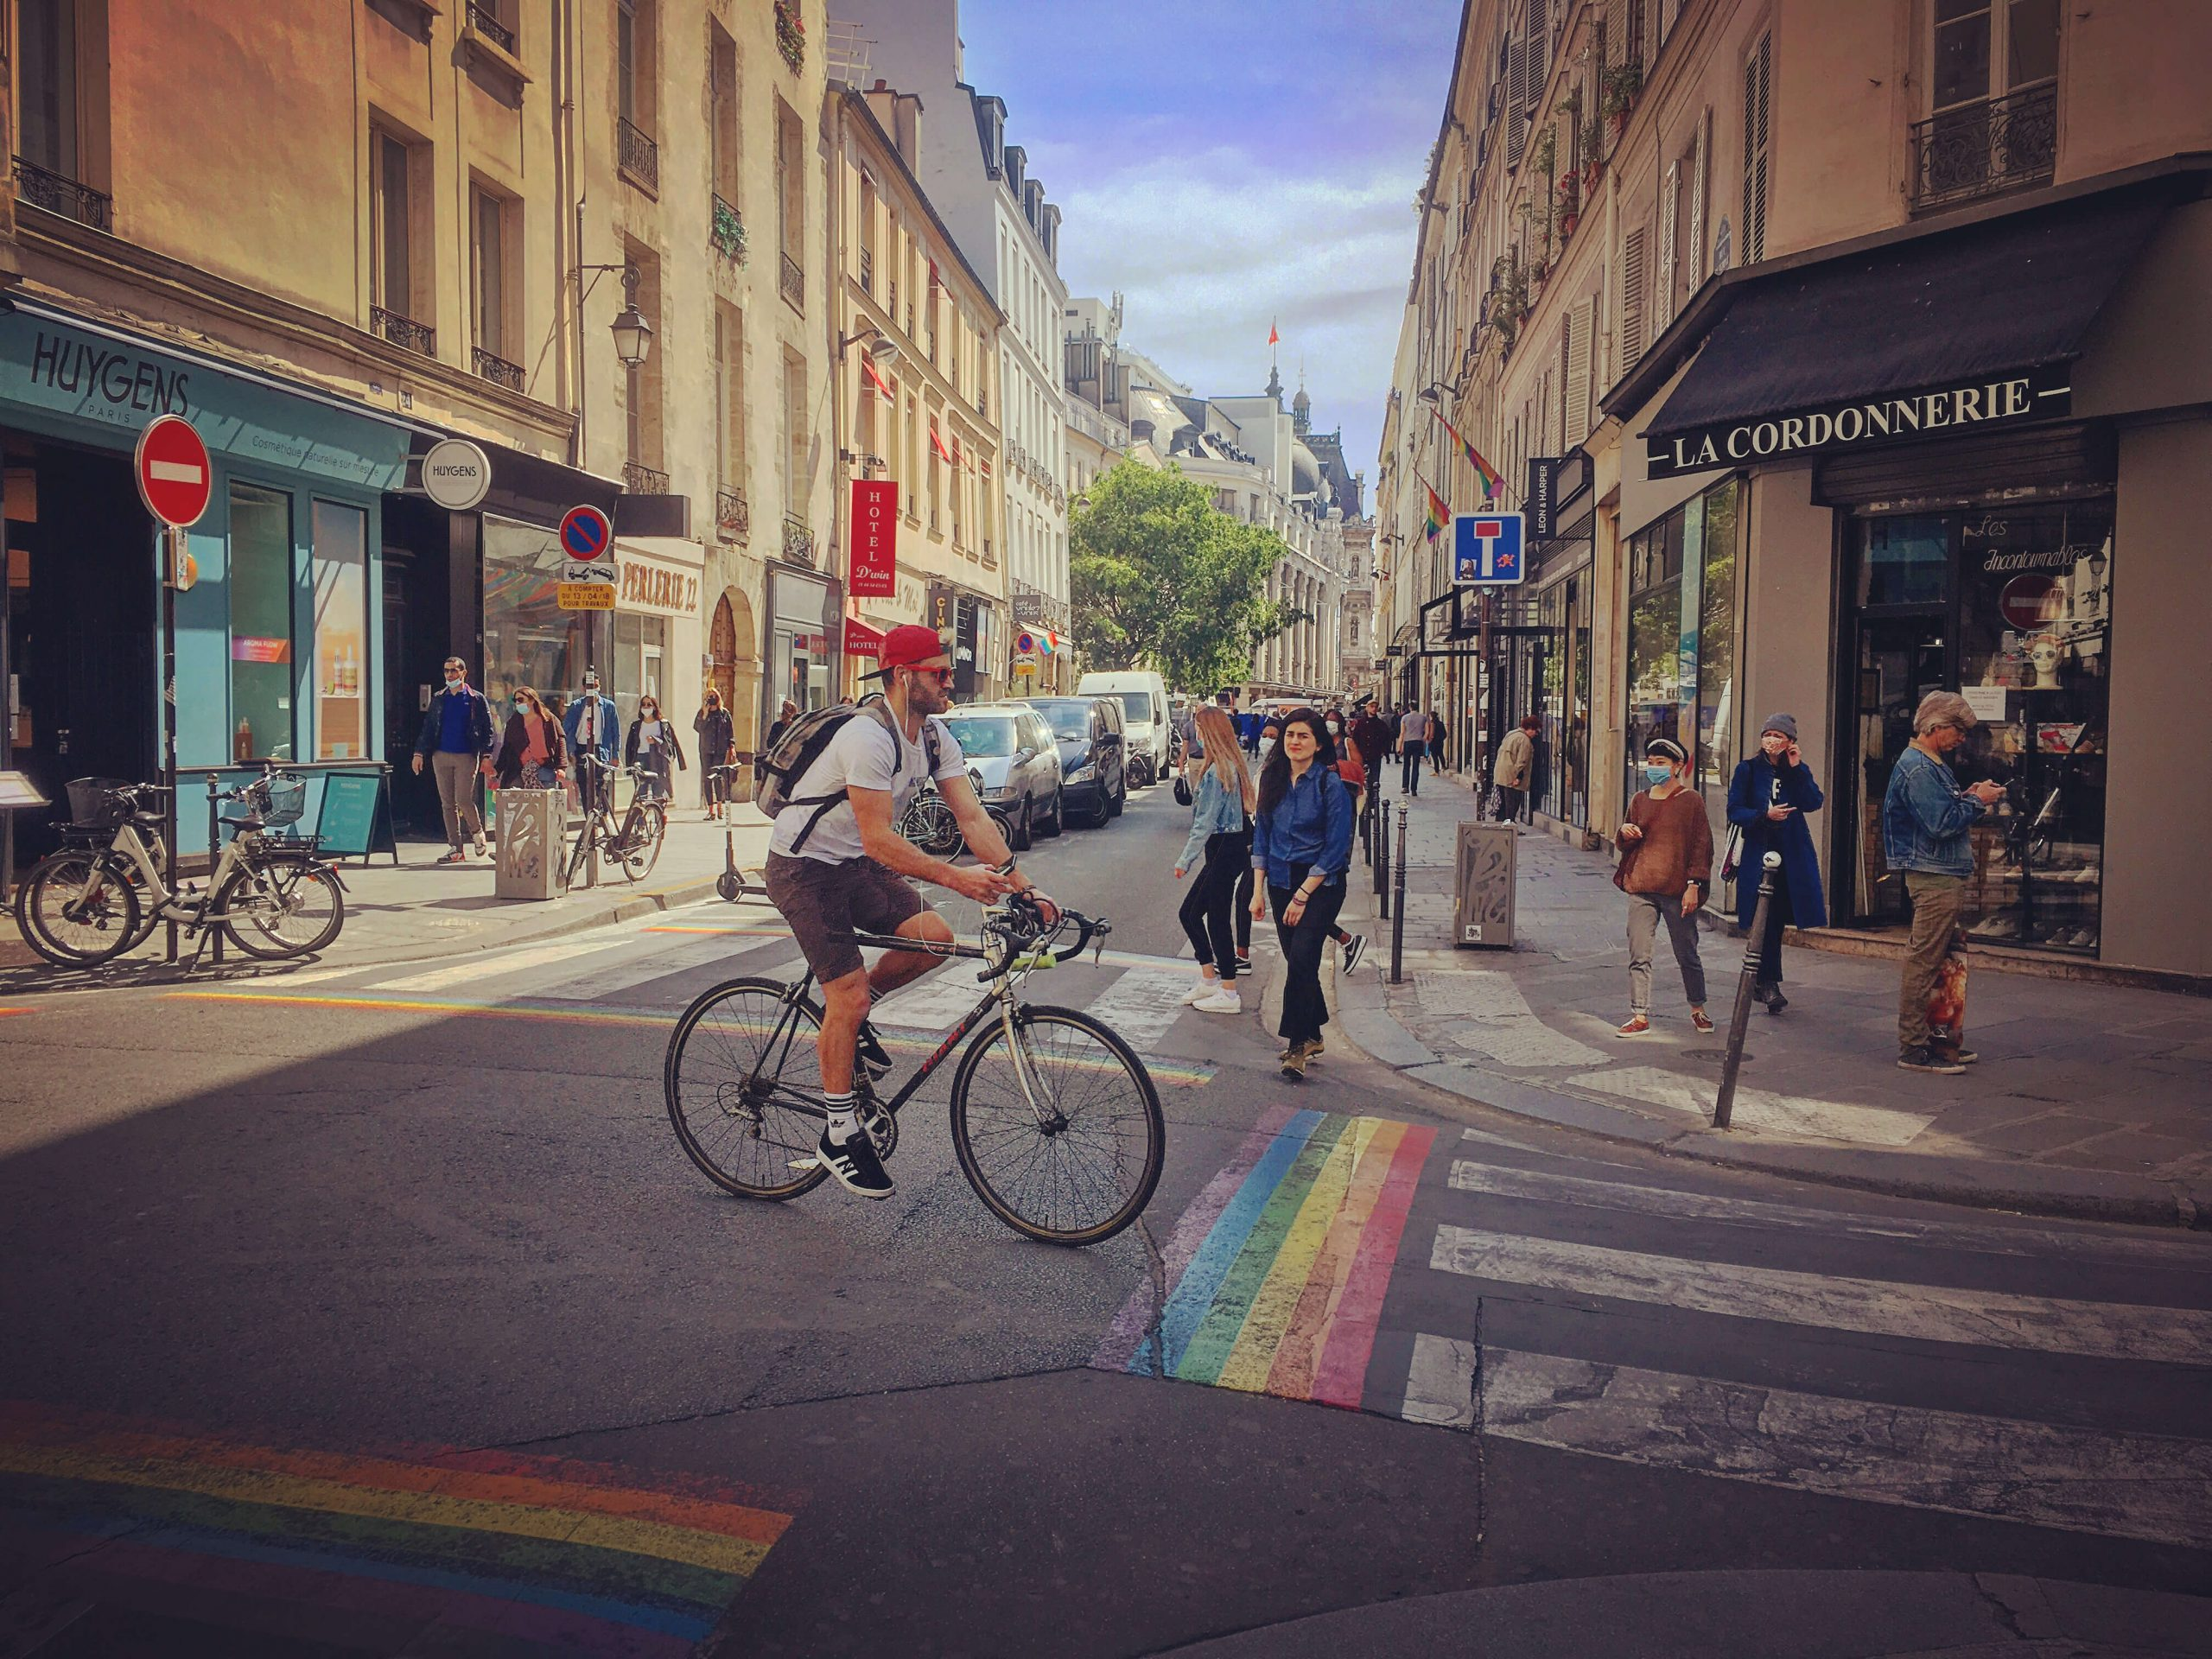 Man riding a bicycle through intersection with rainbow crosswalks